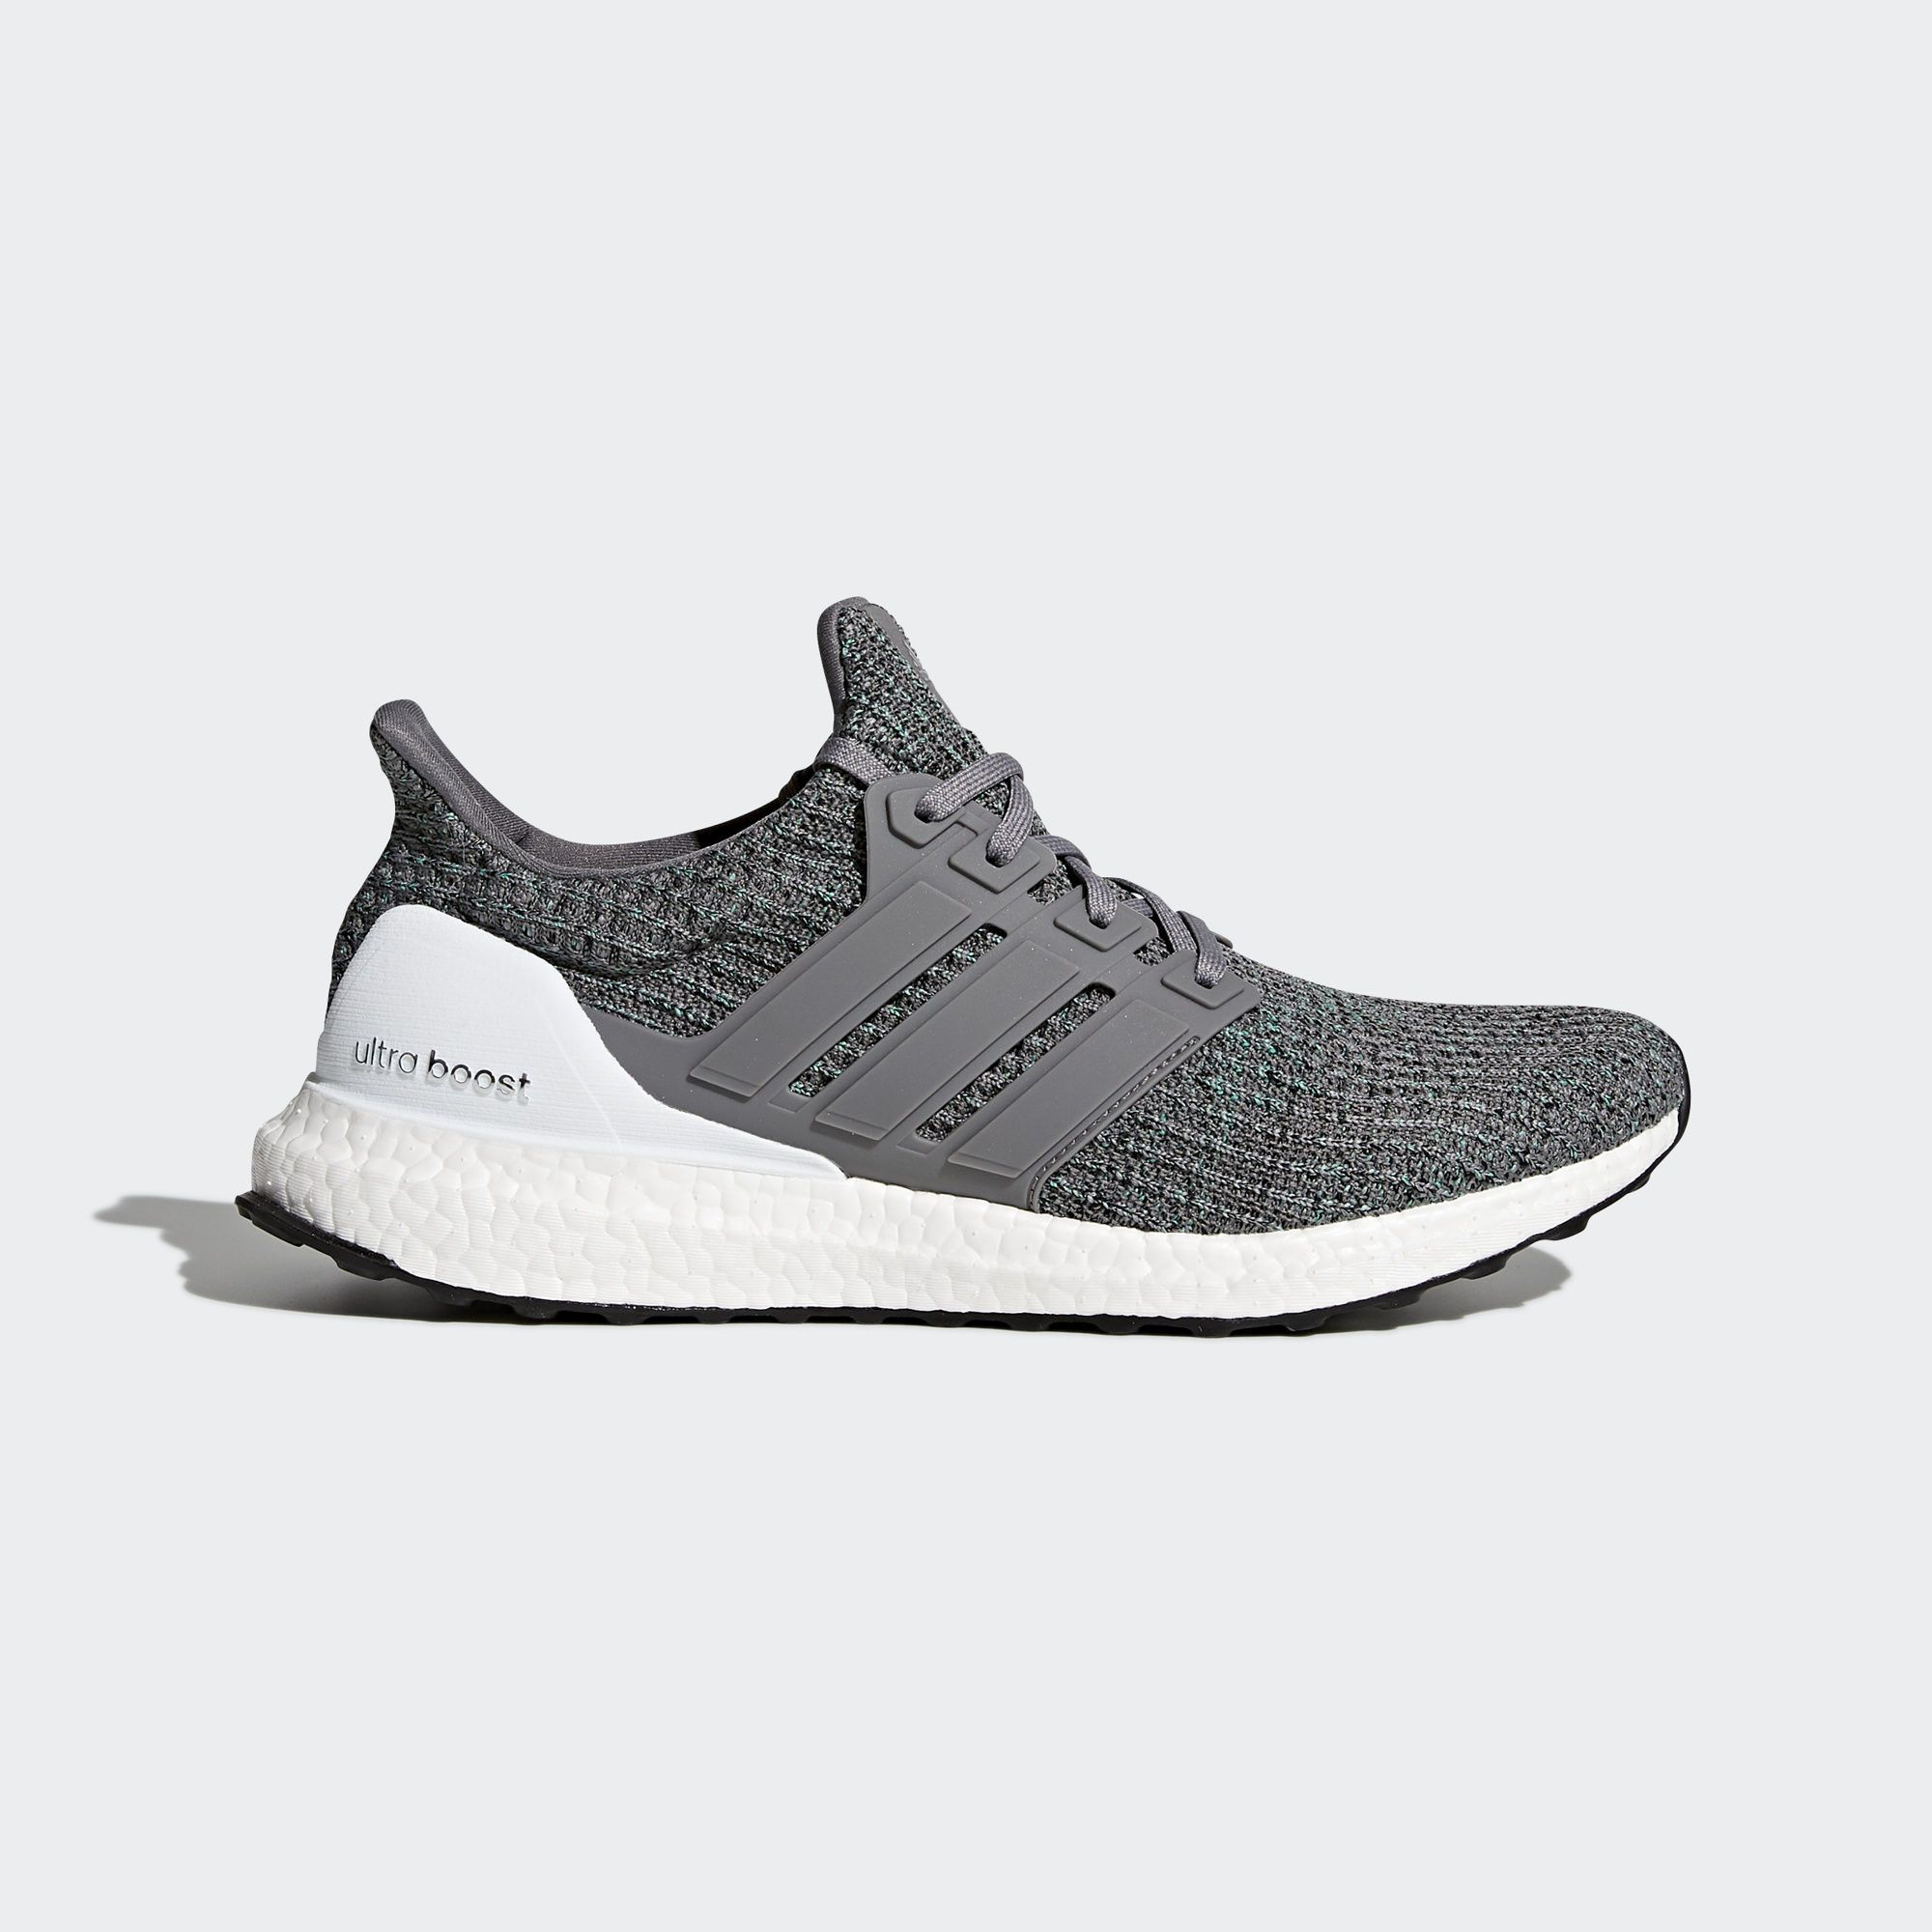 aa06721eb2c Shop the Ultraboost Shoes - Grey at adidas.com/us! See all the styles and  colors of Ultraboost Shoes - Grey at the official adidas online shop.